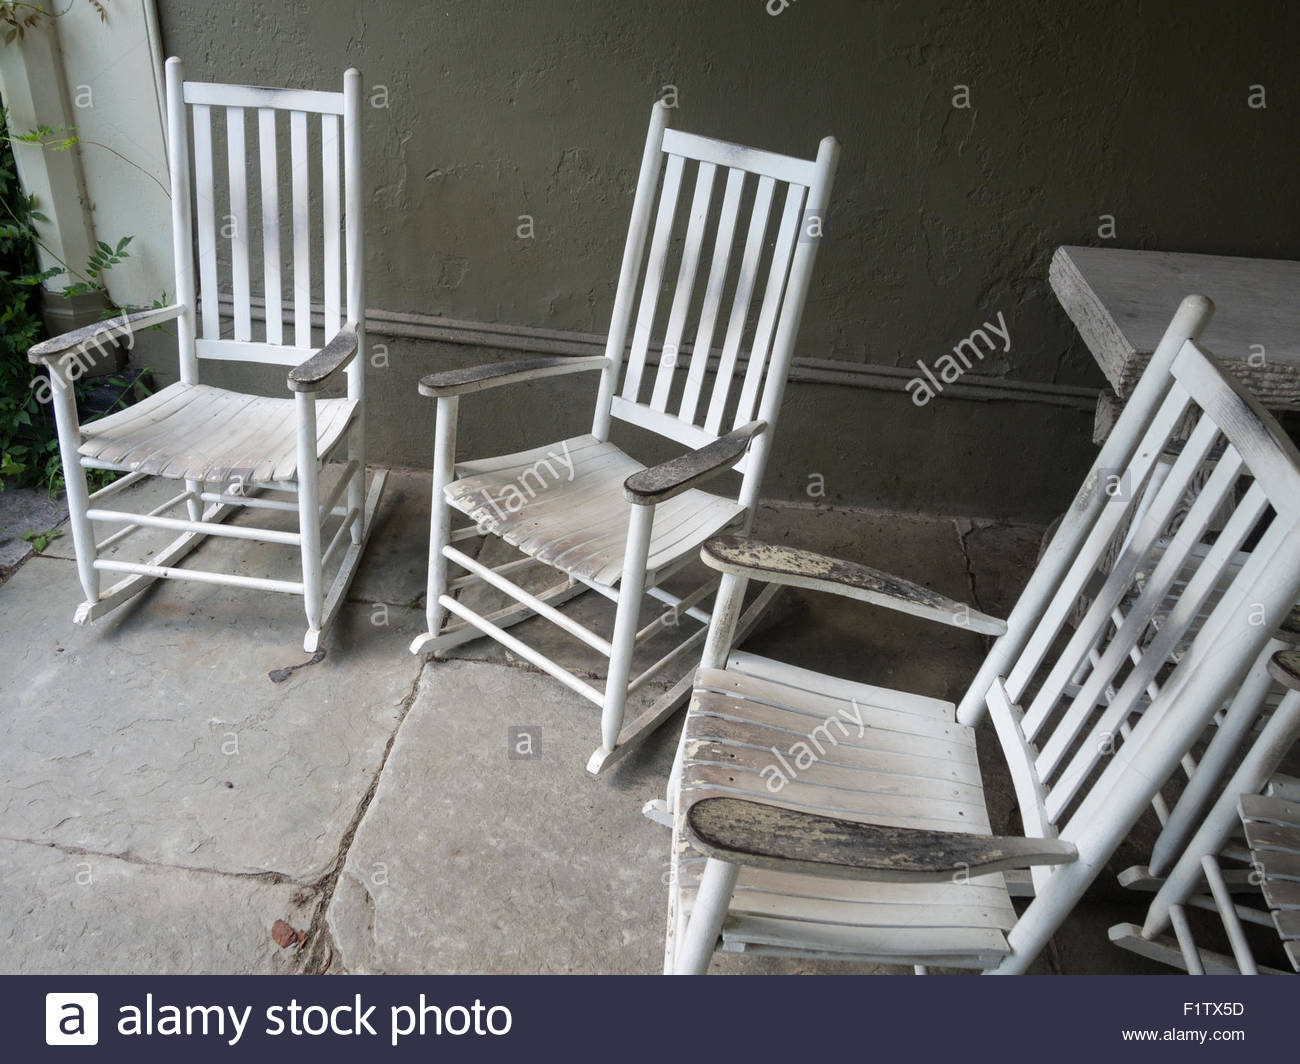 Inspiration about Wooden Rocking Chairs Stock Photos & Wooden Rocking Chairs Regarding White Wood Rocking Chairs (#16 of 20)